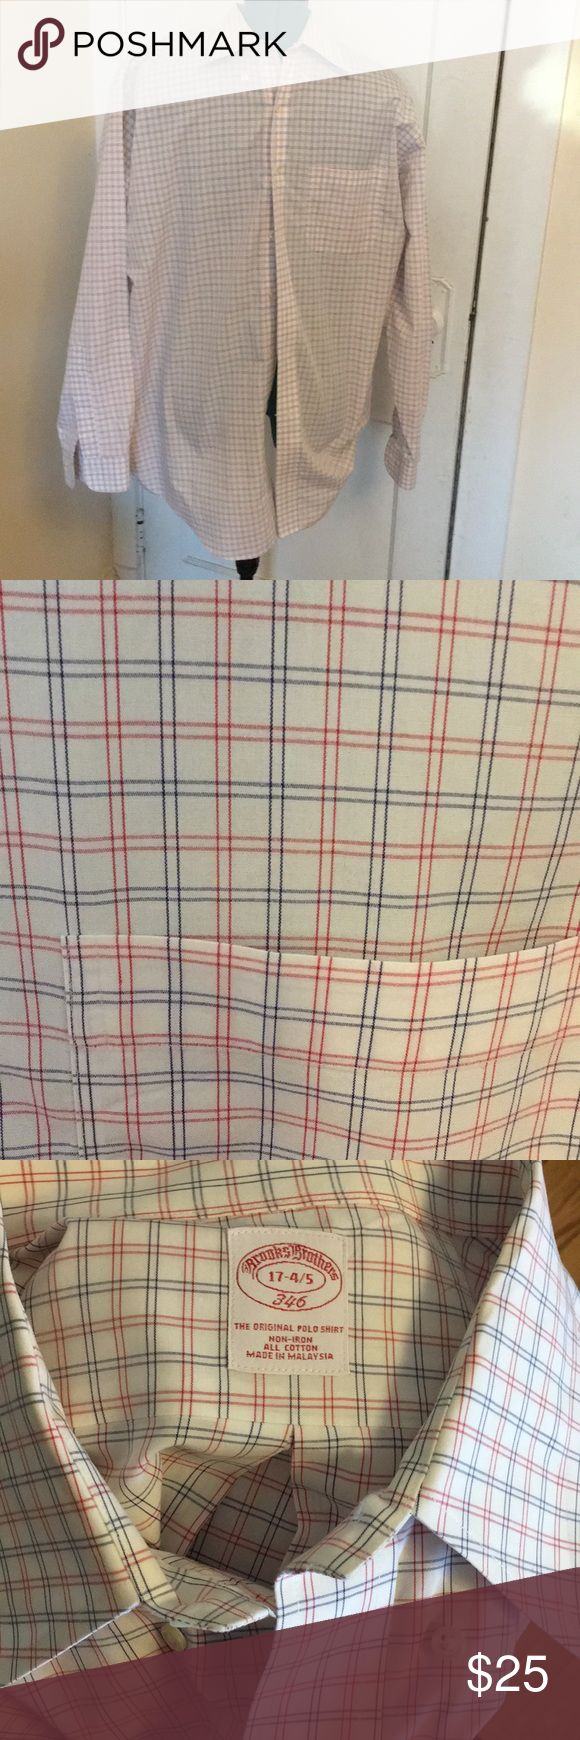 Non iron striped Brooks Brothers Shirt Red white and blue button down Brooks Brothers. Non iron shirt. Would look great with khakis or Chinos. Size 17-4/5. In excellent condition. All offers entertained!! Brooks Brothers Shirts Casual Button Down Shirts